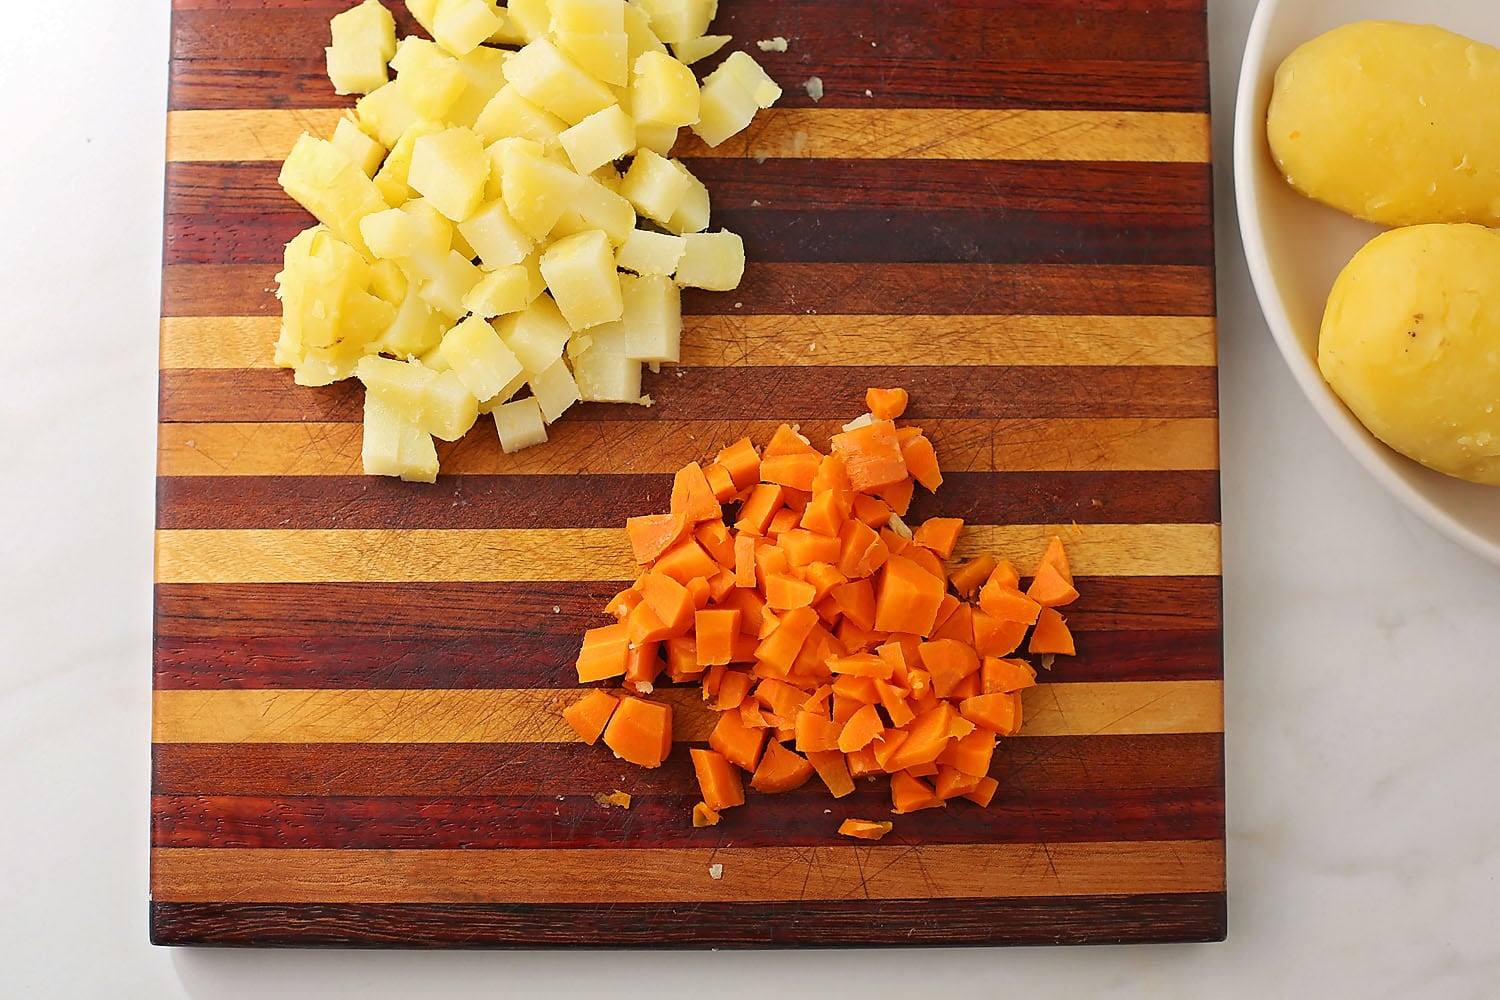 diced carrots and potato on the wooden cutting board